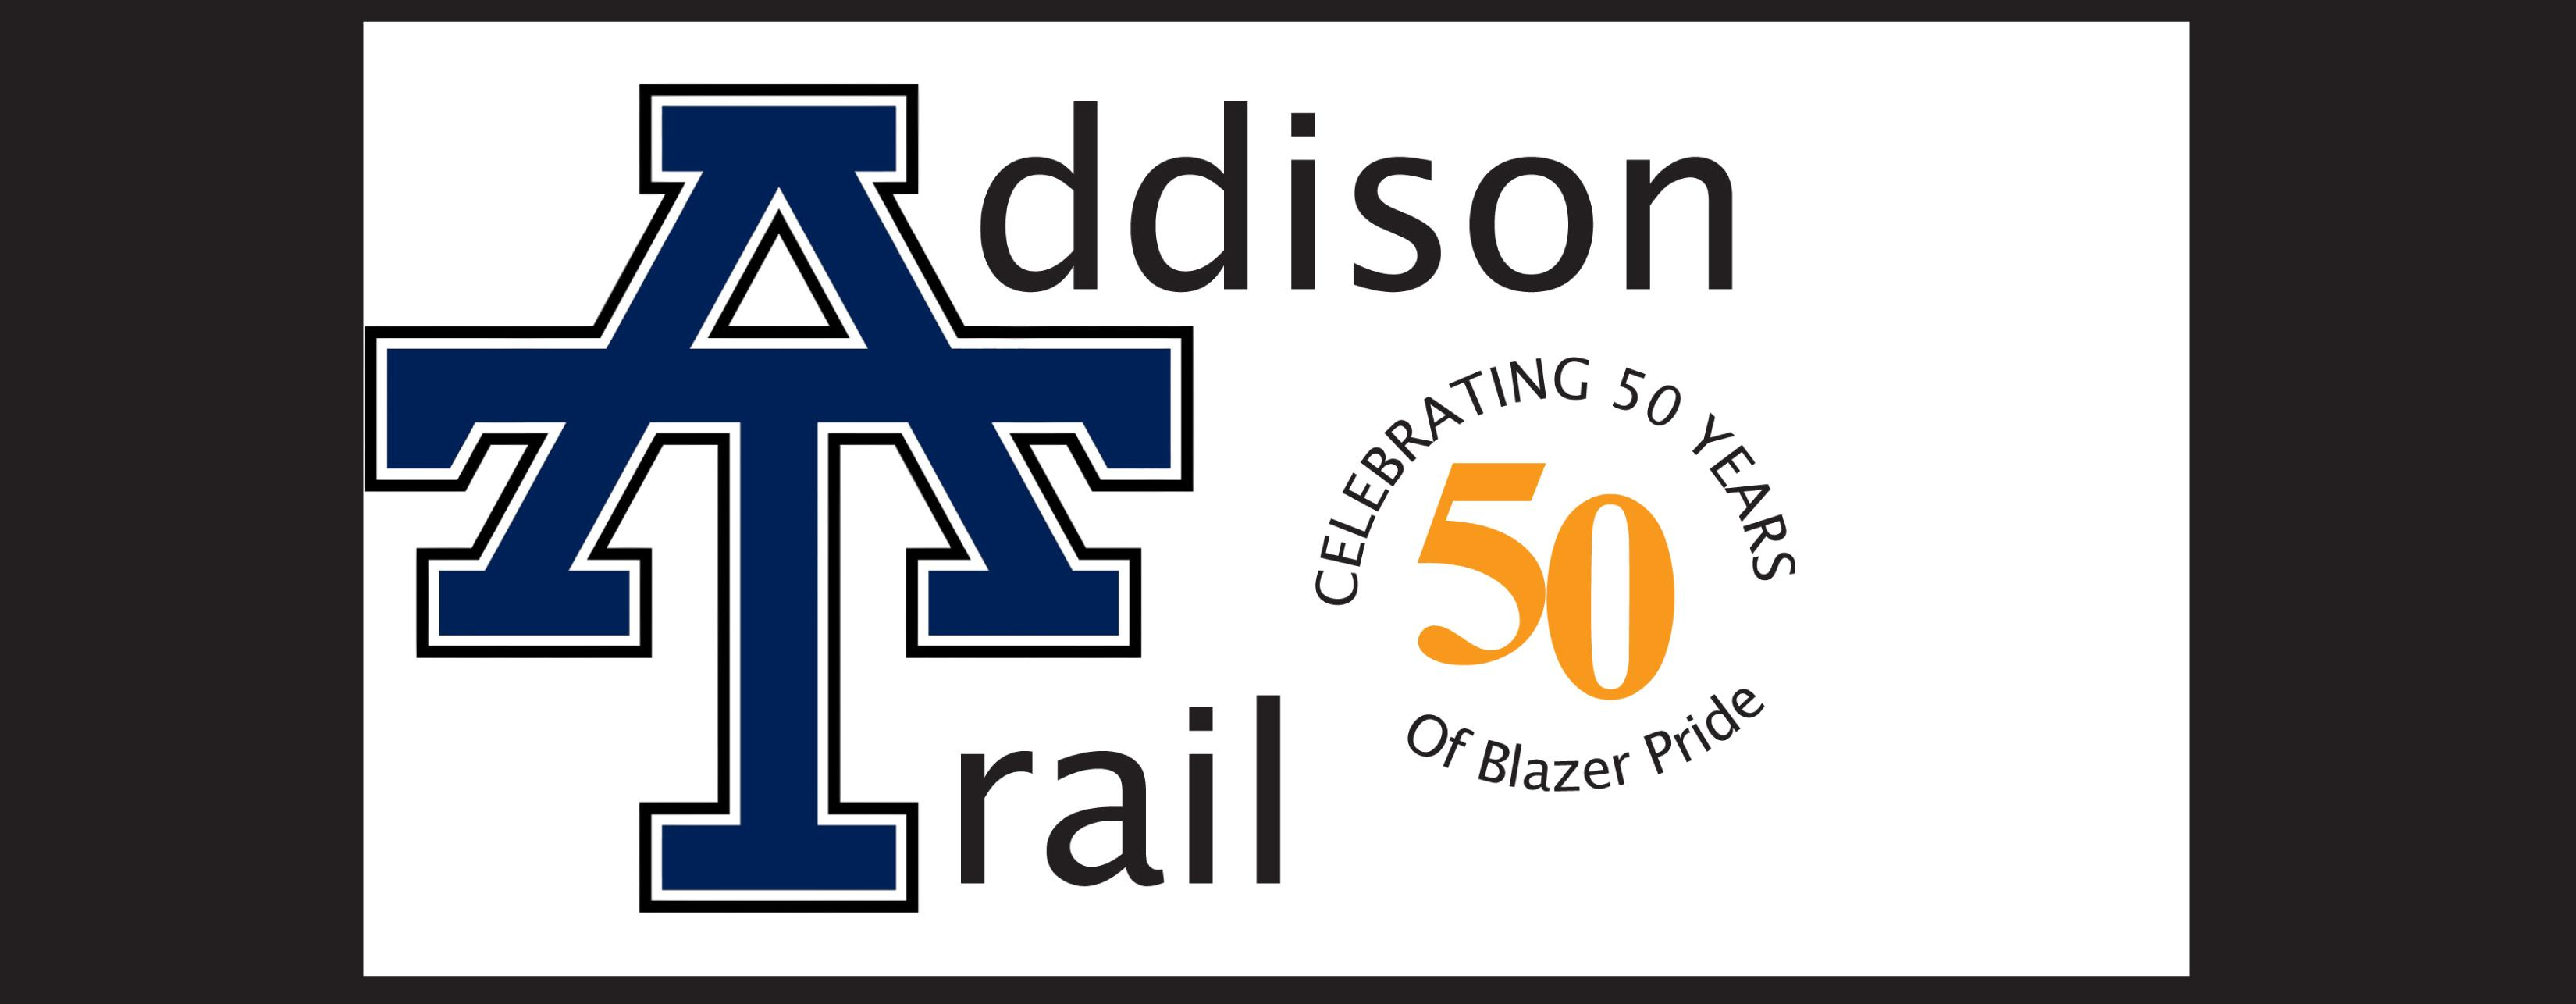 Addison Trail invites you to connect to join in celebrating the school's 50th anniversary